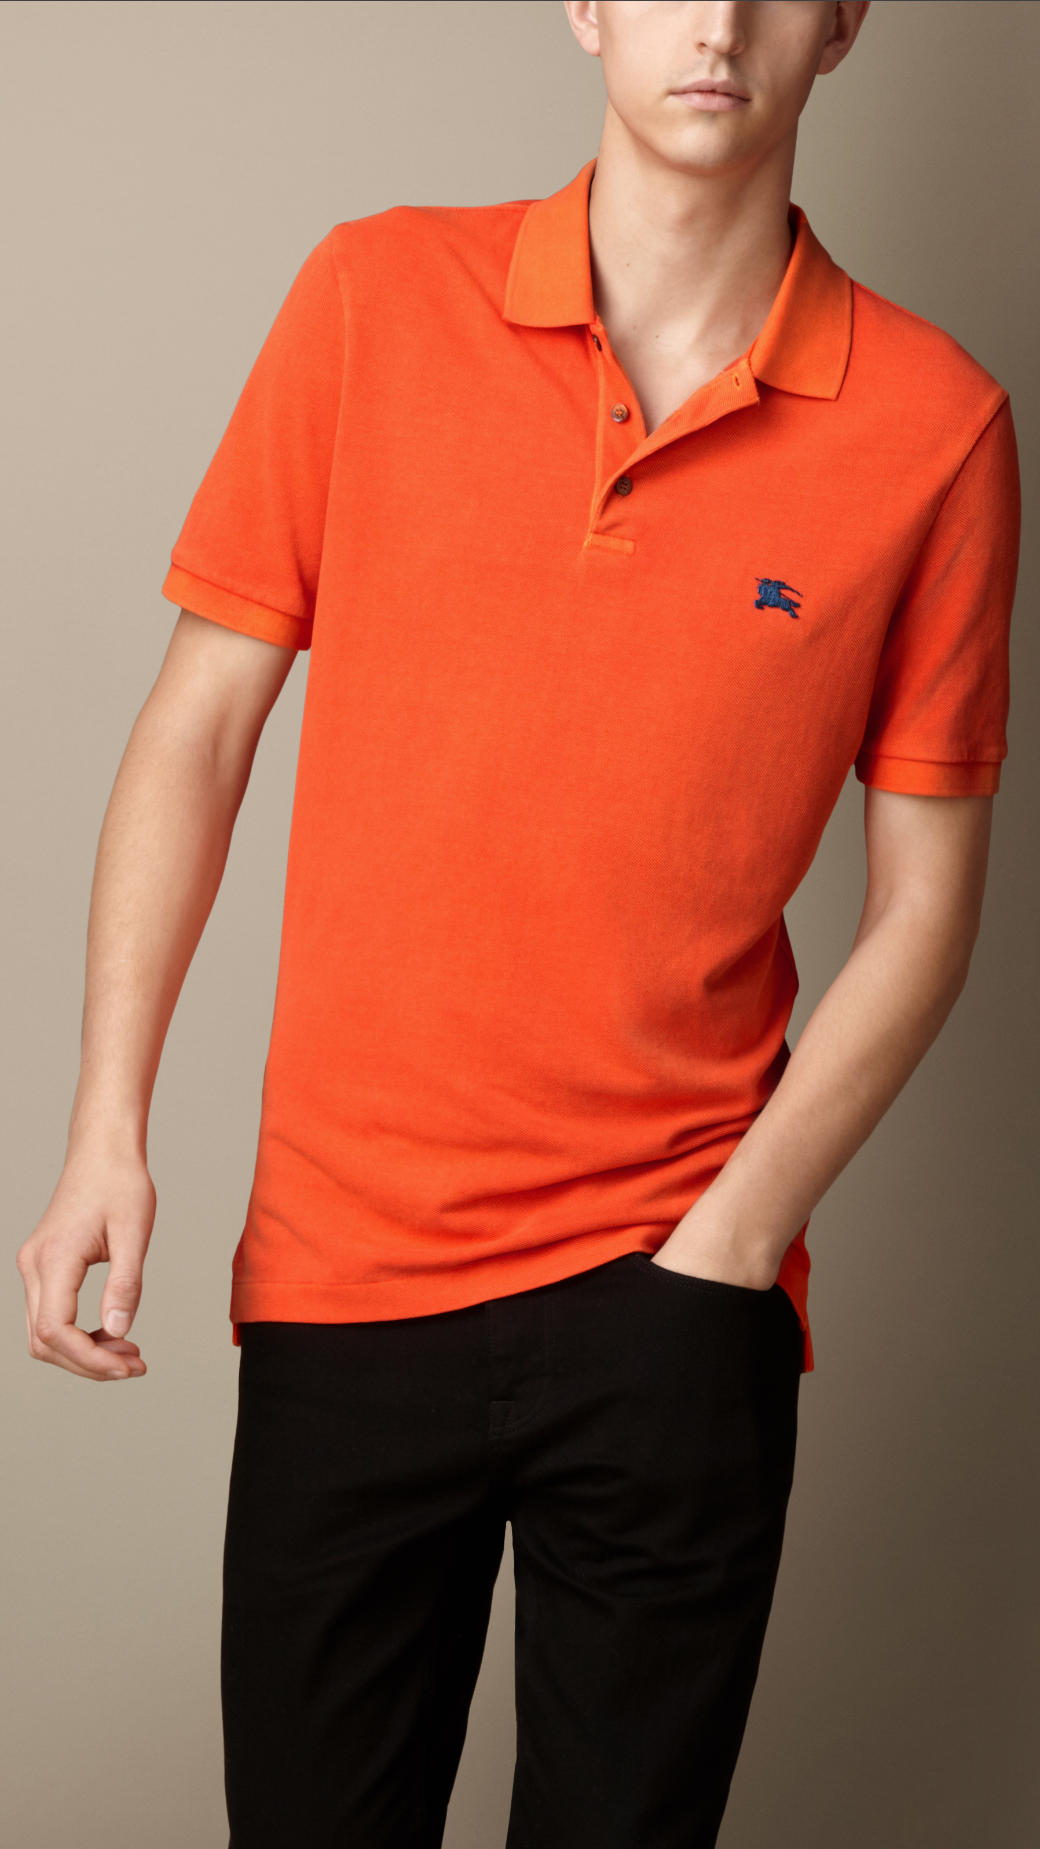 991702c35 Burberry Cotton Jersey Double Dyed Polo Shirt in Orange for Men - Lyst